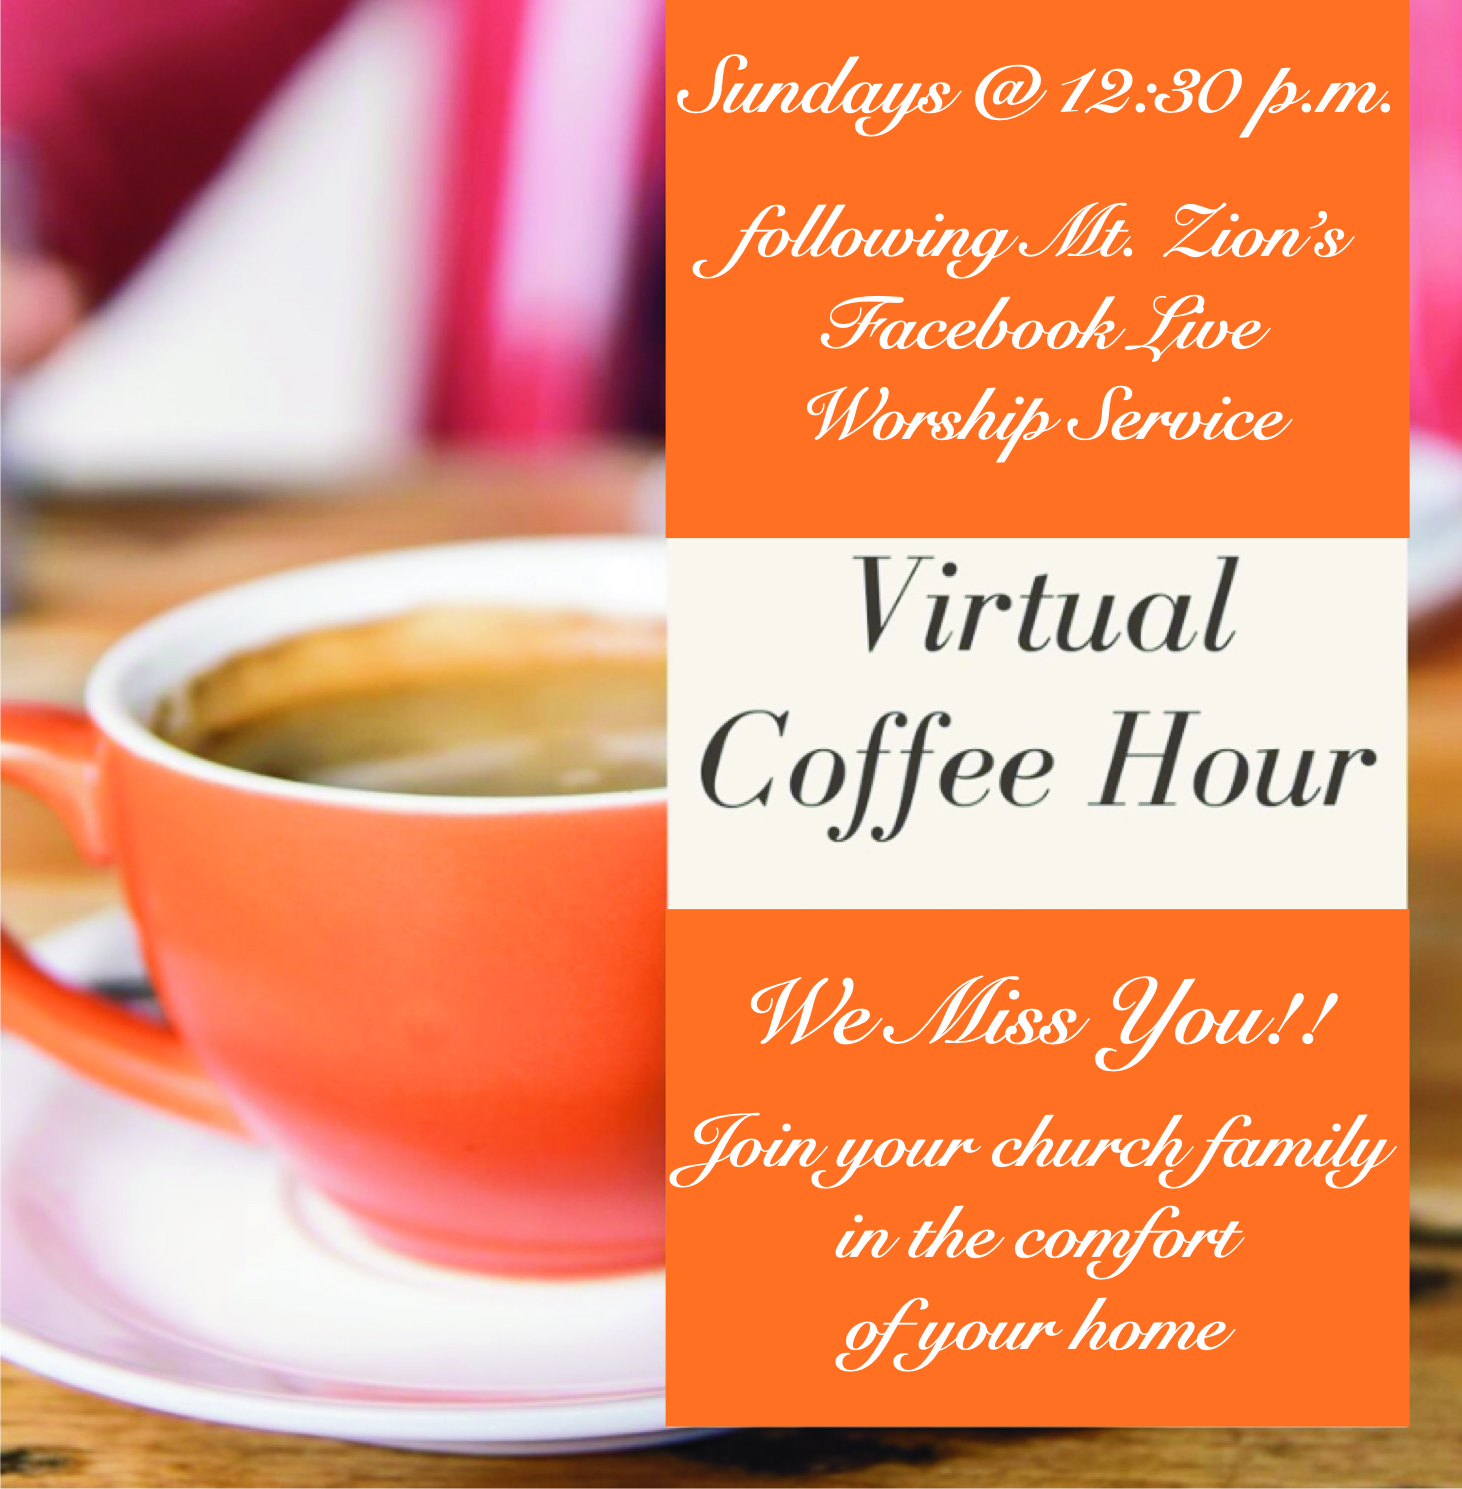 virtualcoffeehour